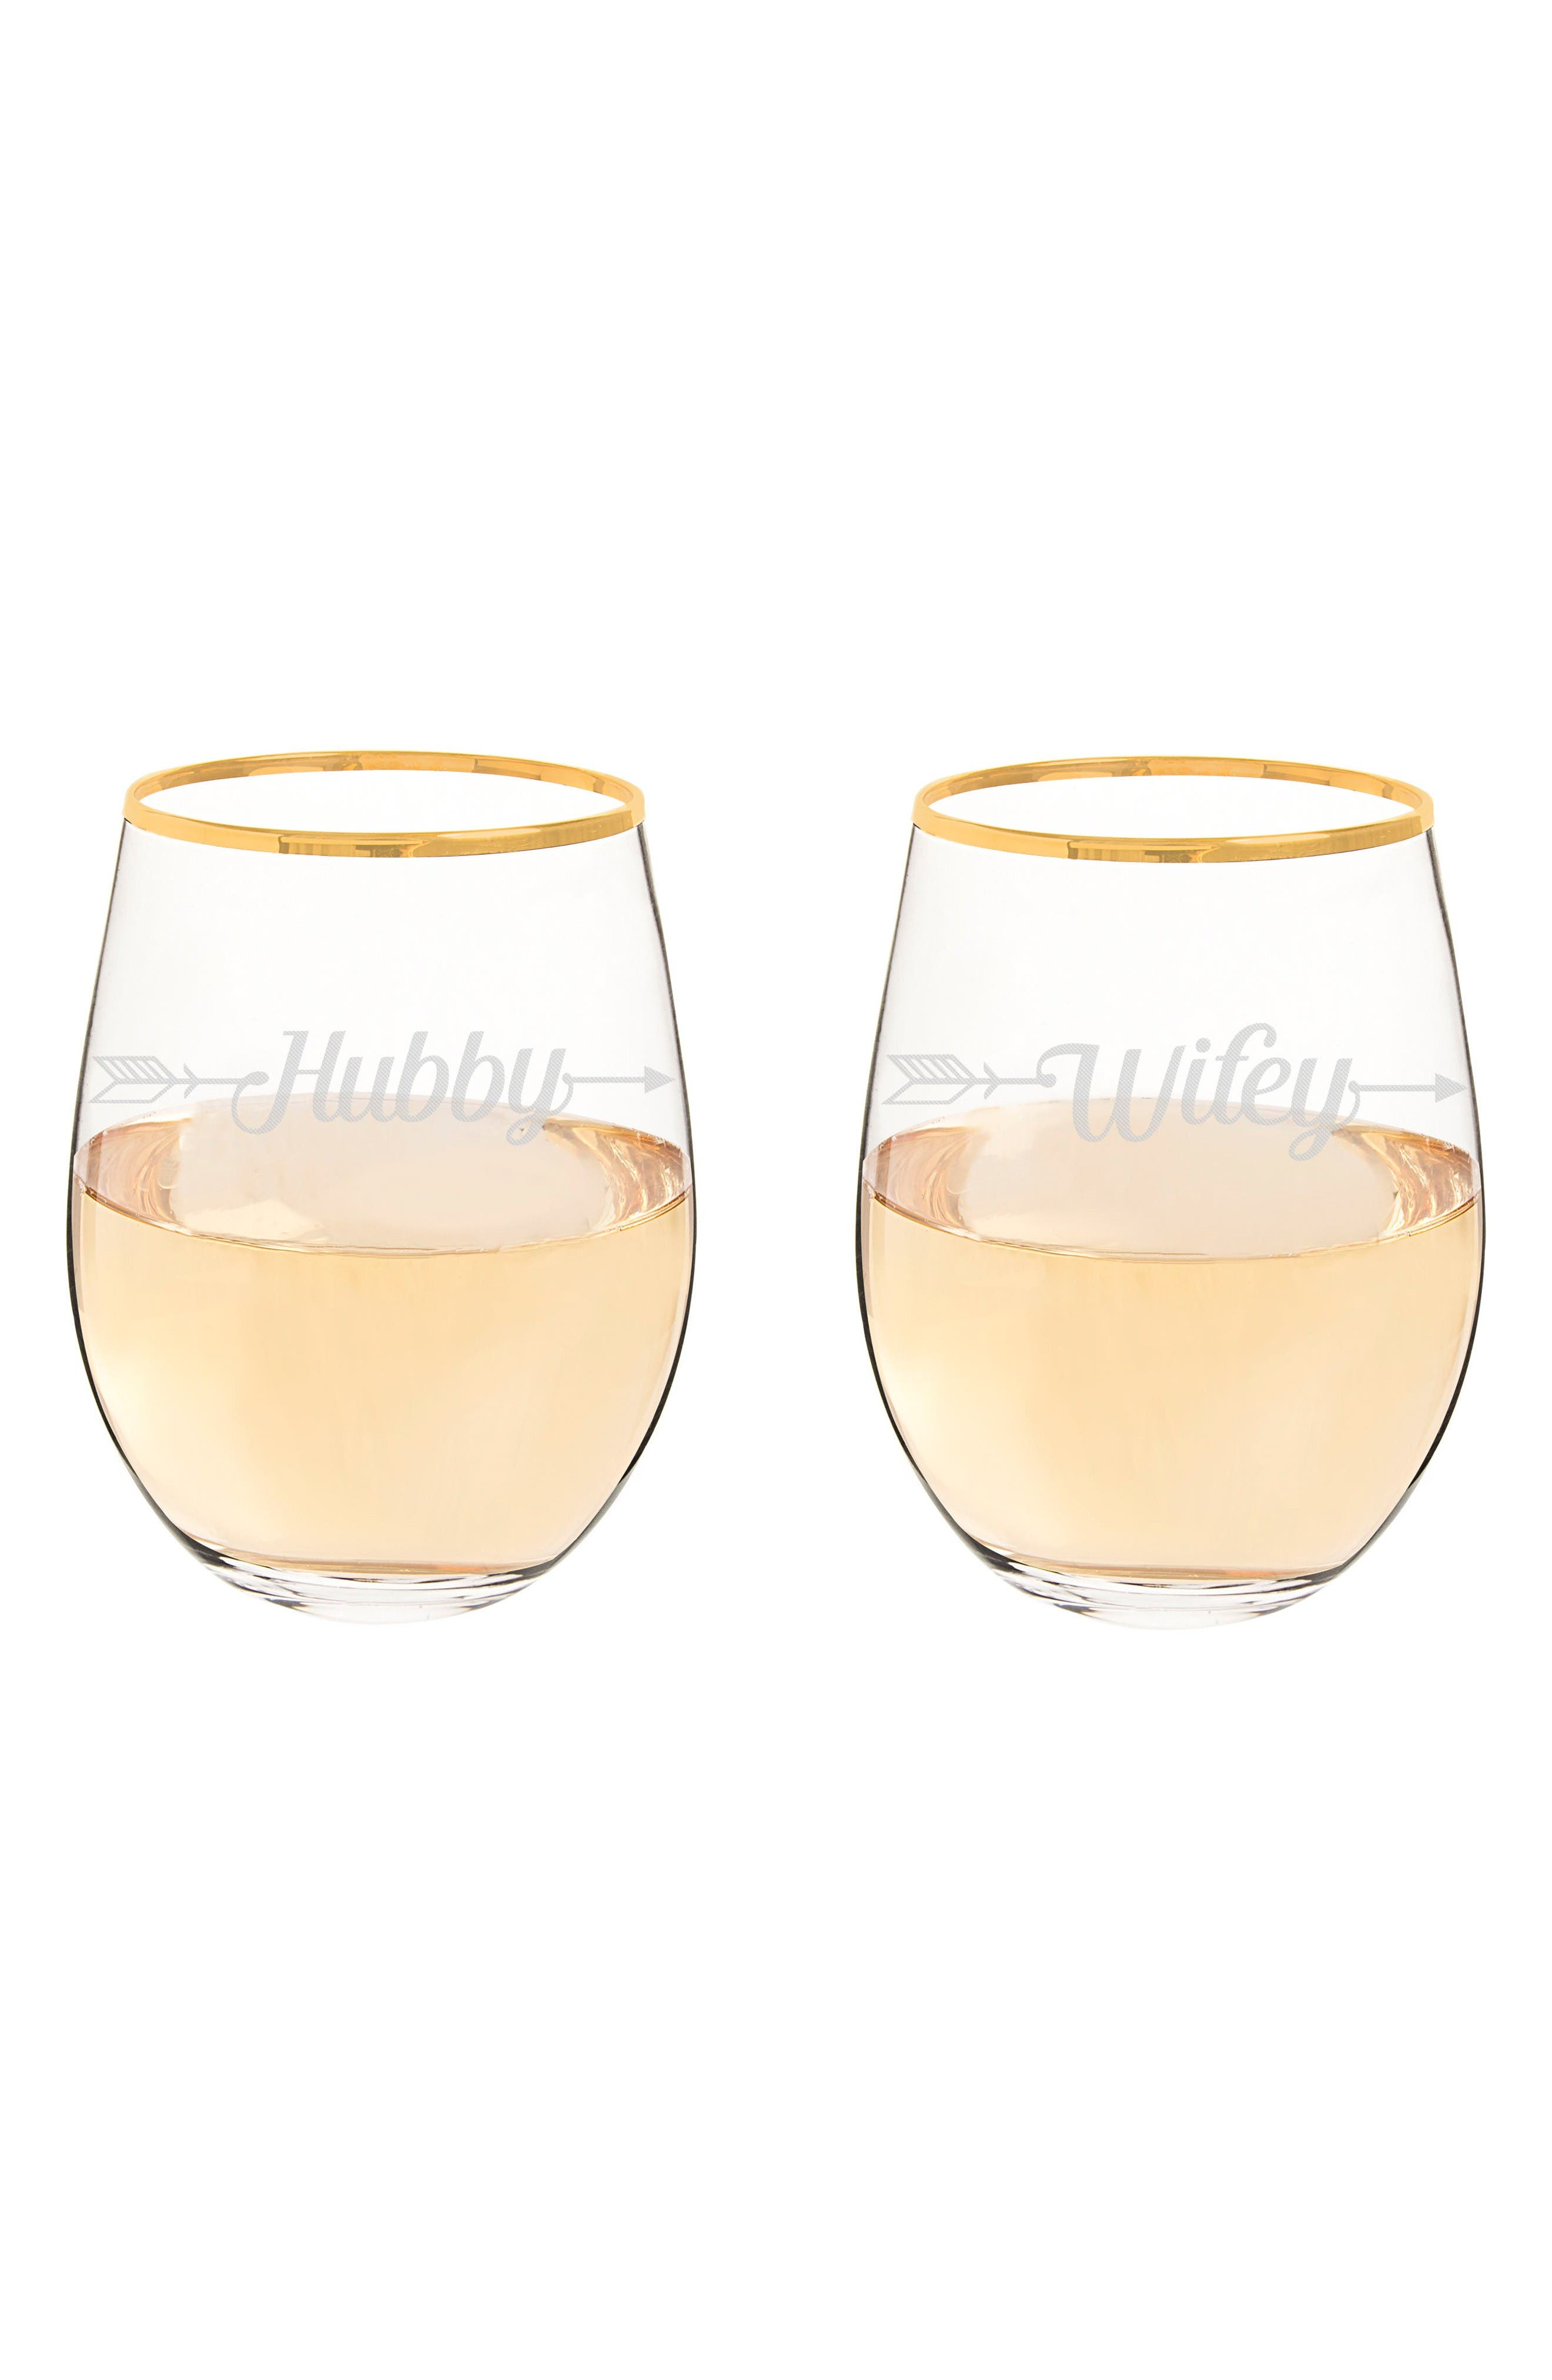 Alternate Image 1 Selected - Cathy's Concepts Hubby/Wifey Set of 2 Gold Rimmed Stemless Wine Glasses